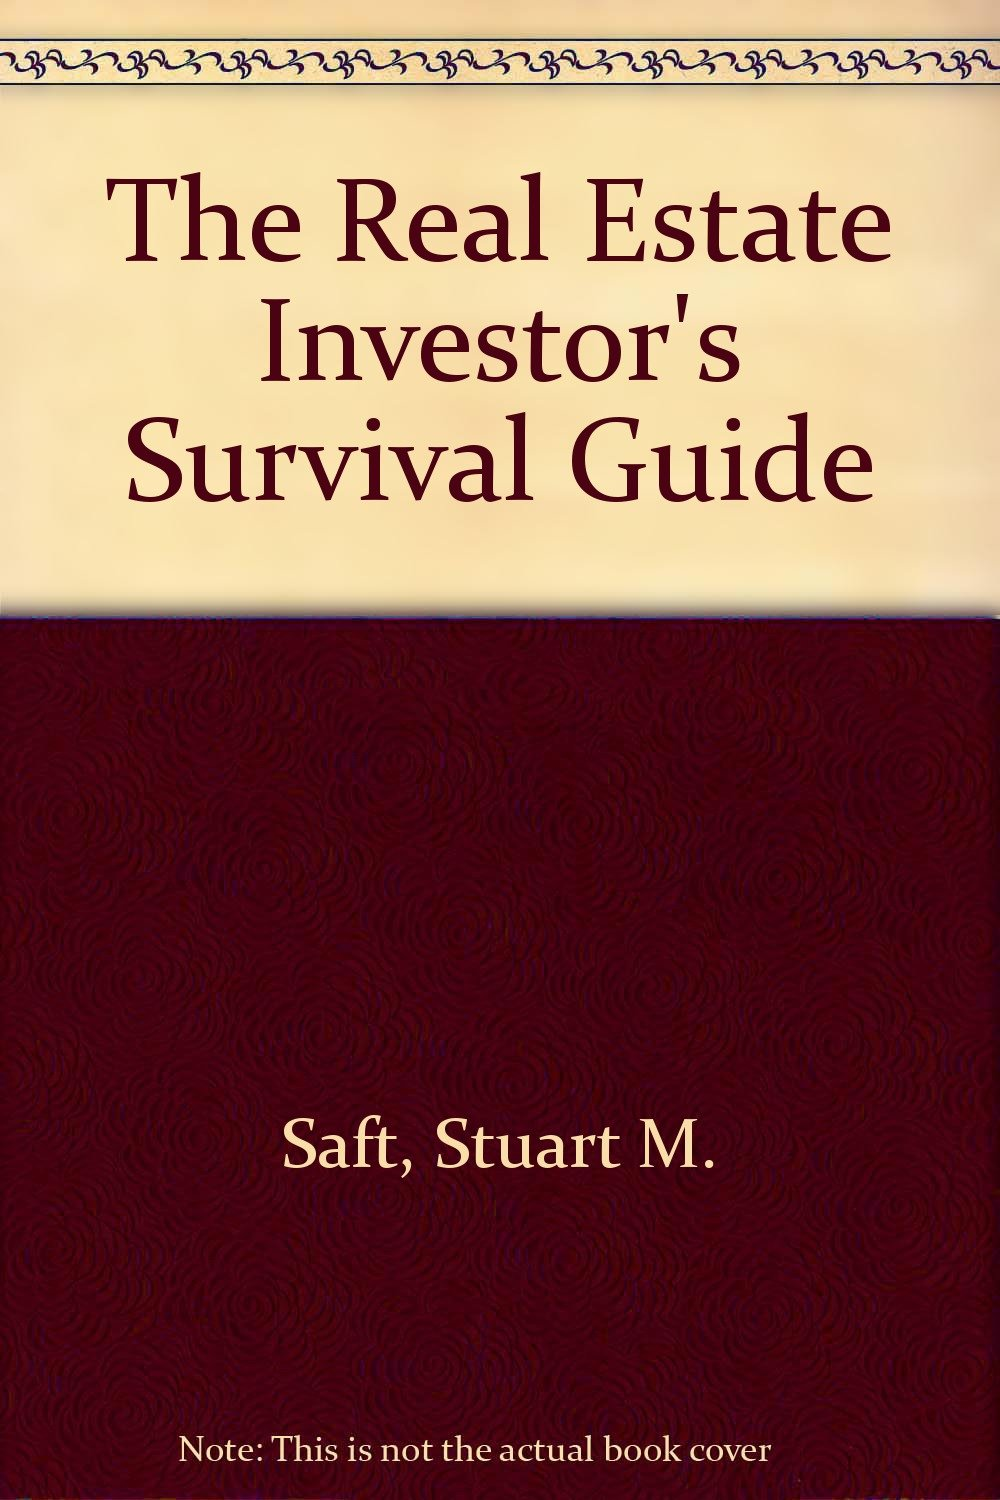 The Real Estate Investor's Survival Guide